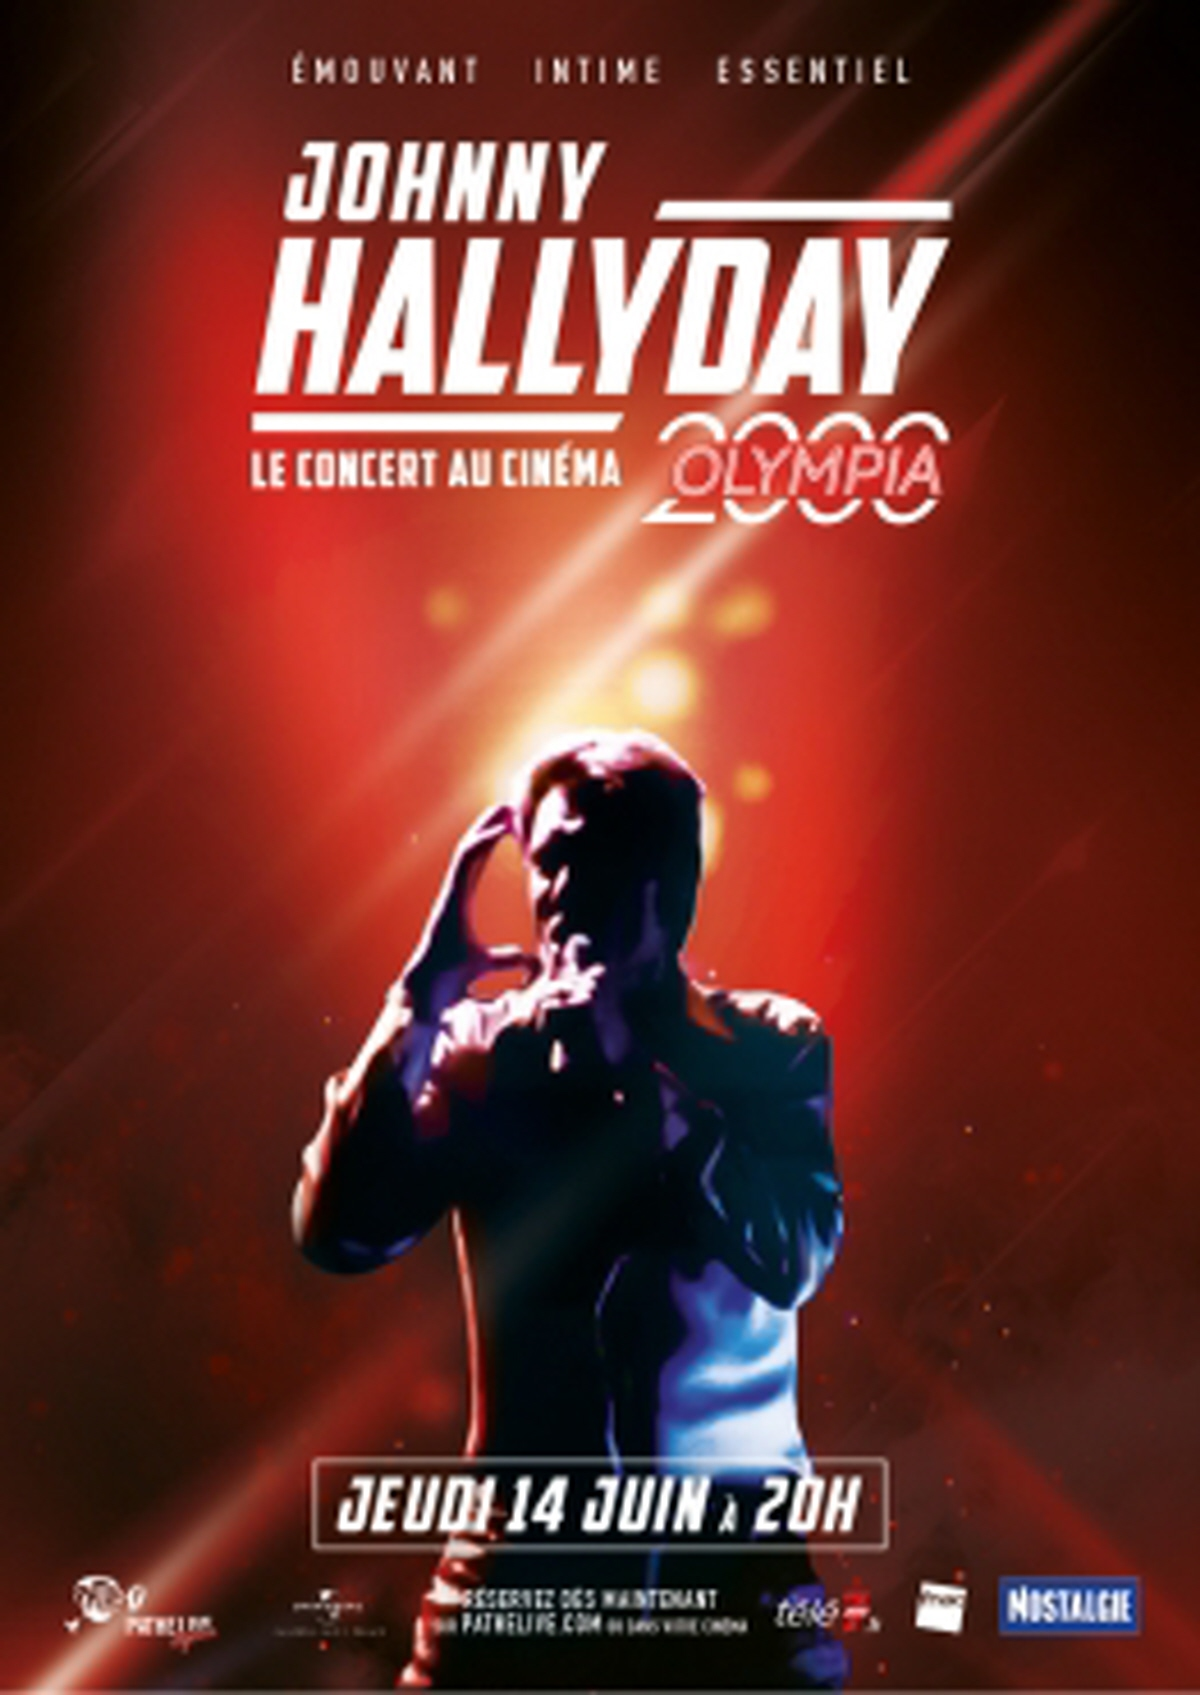 illustration johnny hallyday olympia 2000 1 1528107146